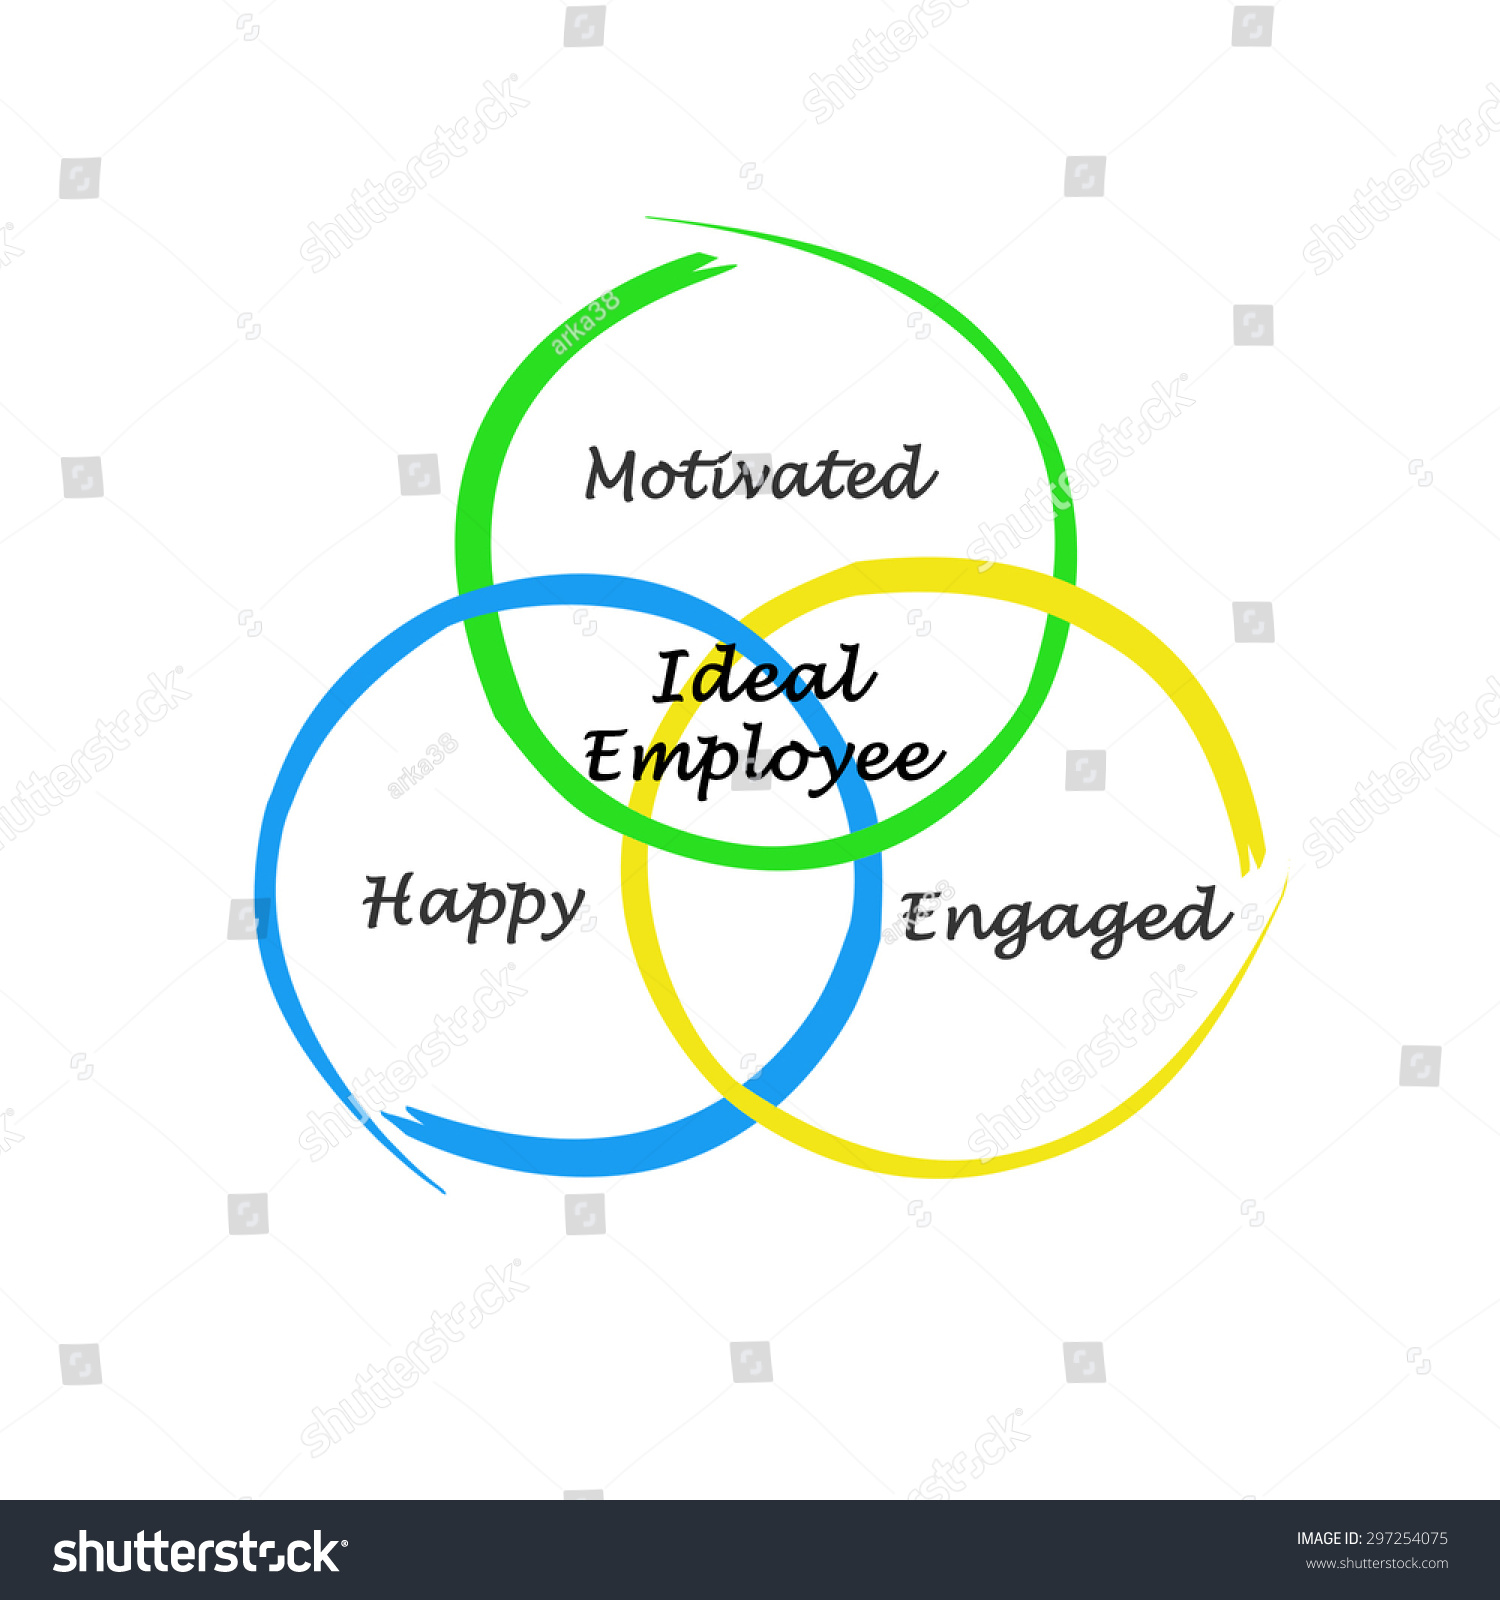 ideal employee stock illustration shutterstock ideal employee